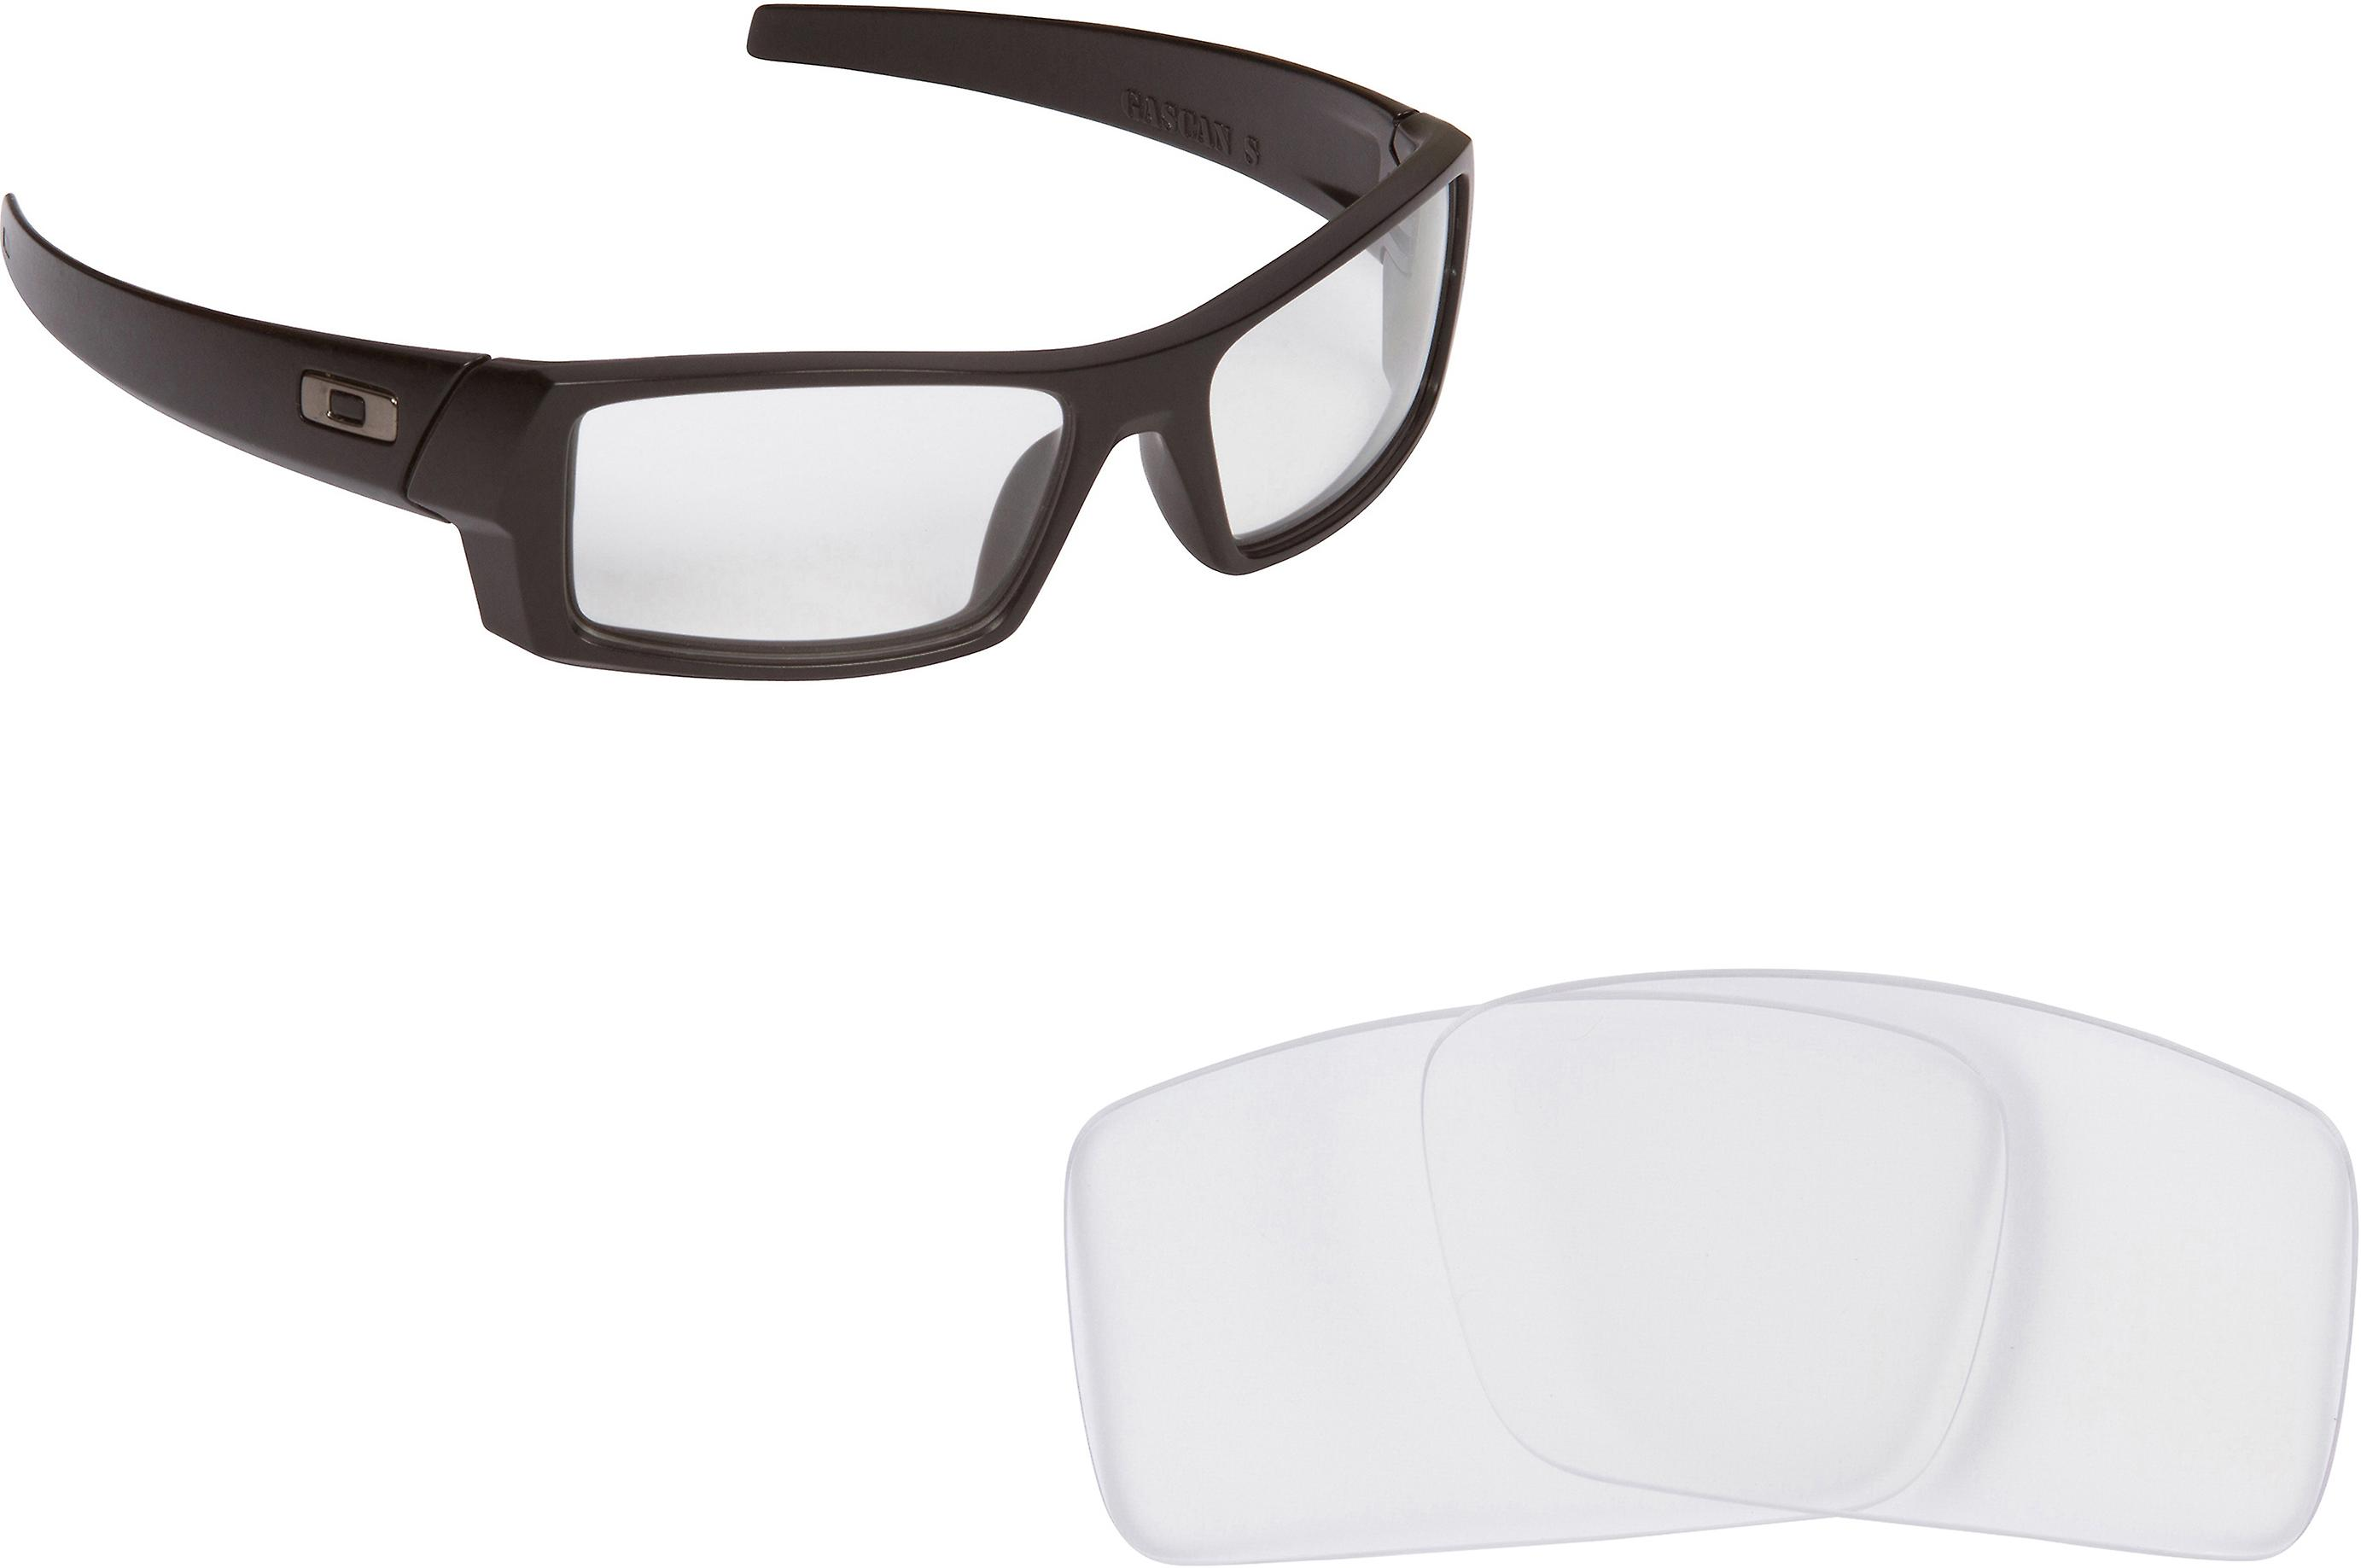 d5d10e7b2ac9e Gascan S Replacement Lenses Crystal Clear by SEEK fits OAKLEY Sunglasses